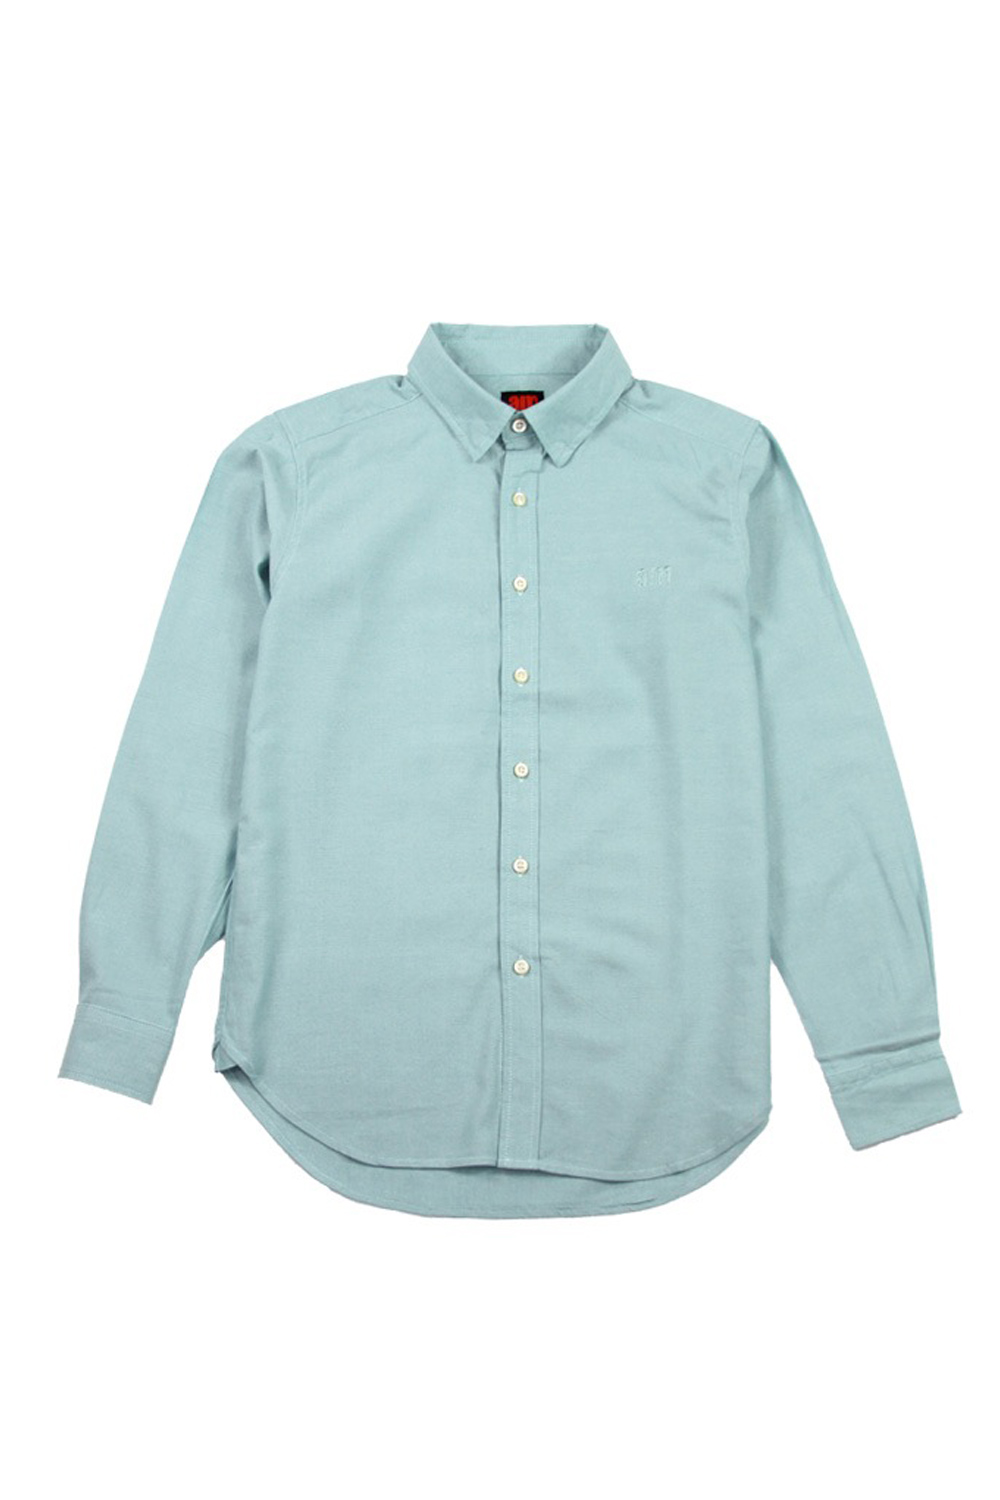 画像1: 【am】OXFORD SHIRTS